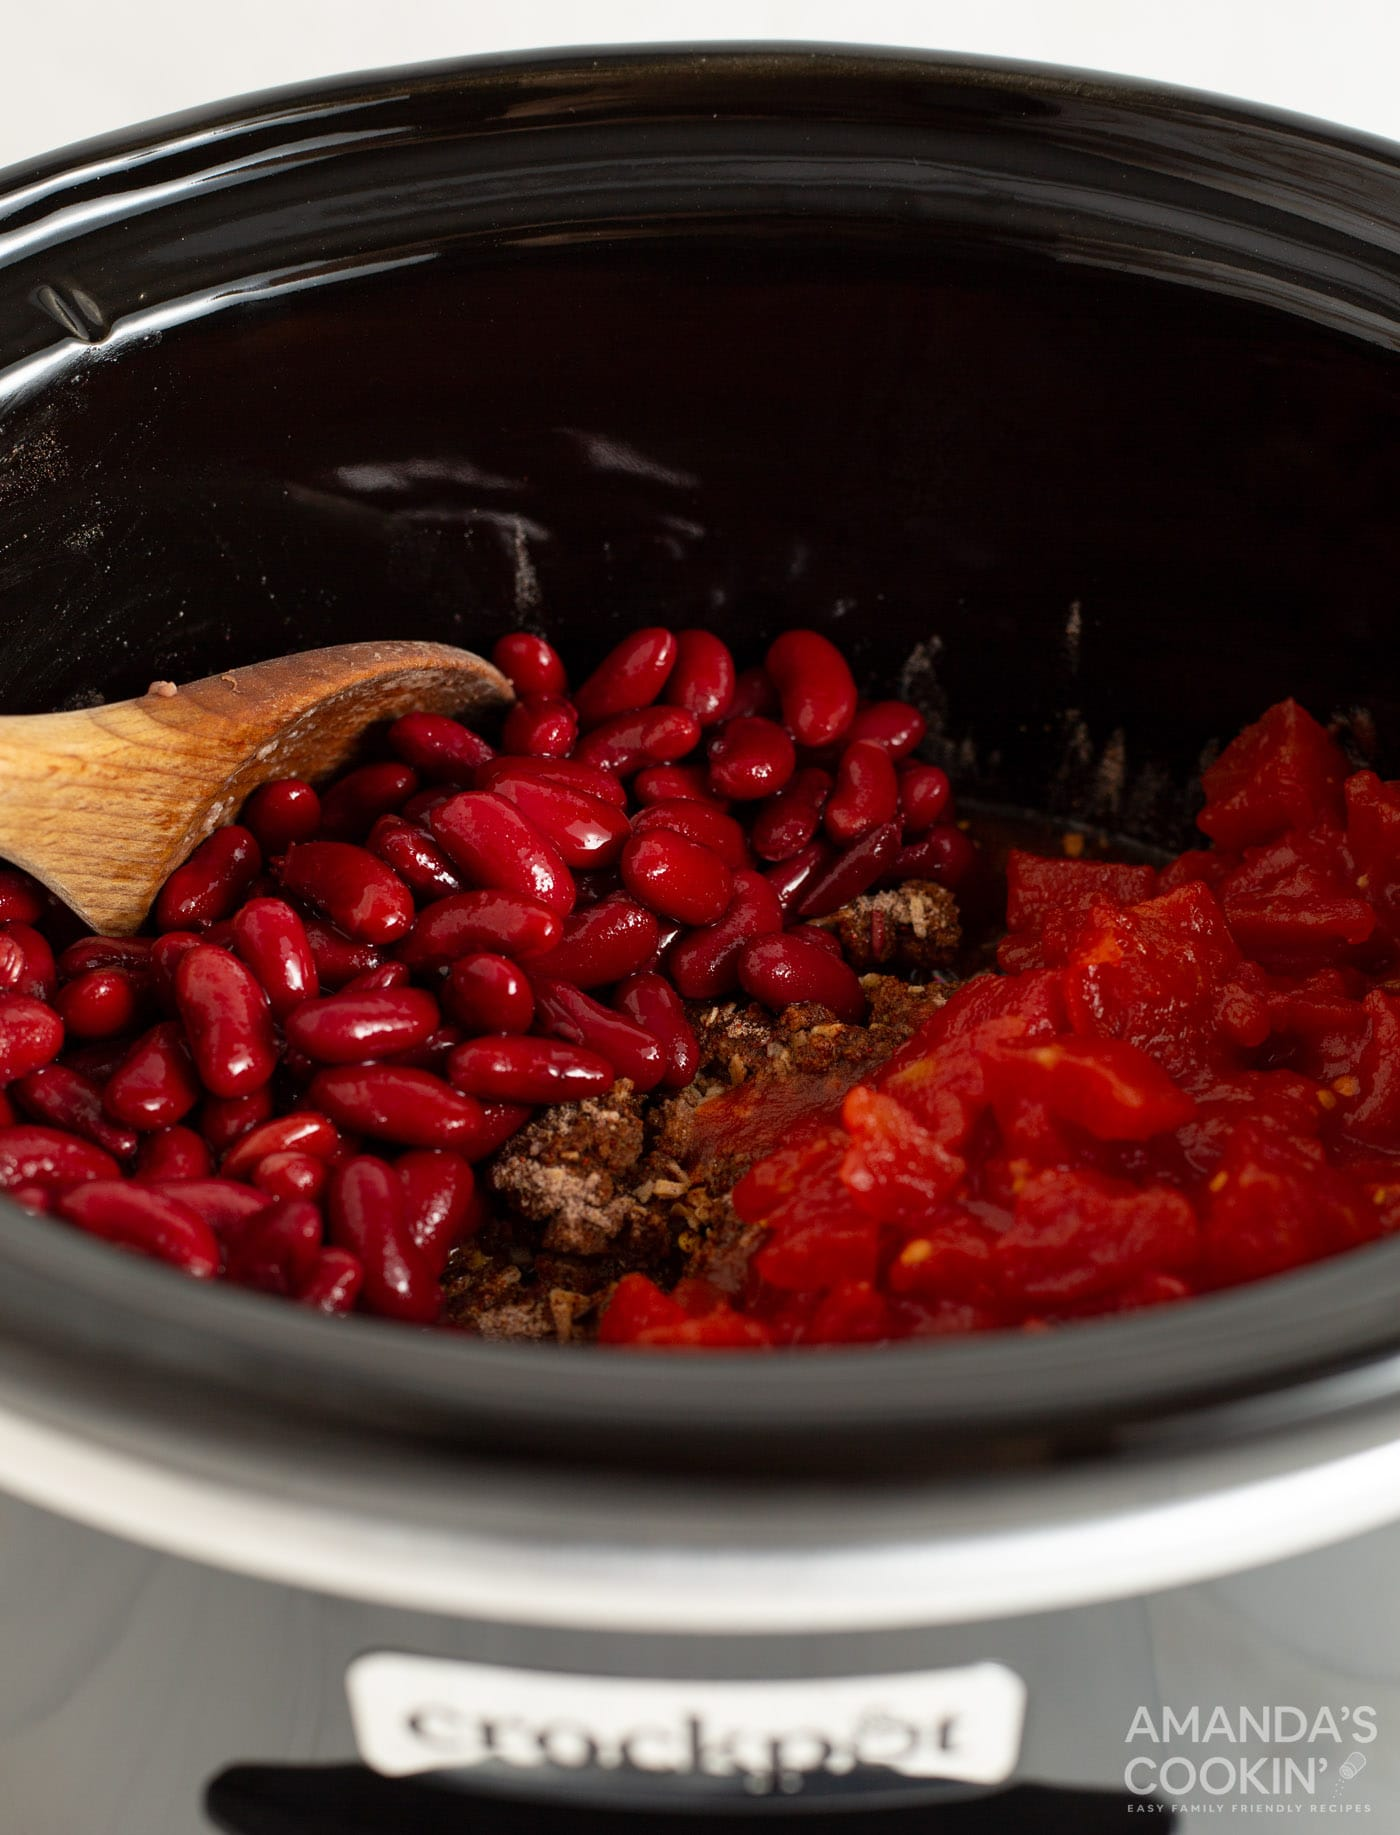 chili ingredients in a crockpot